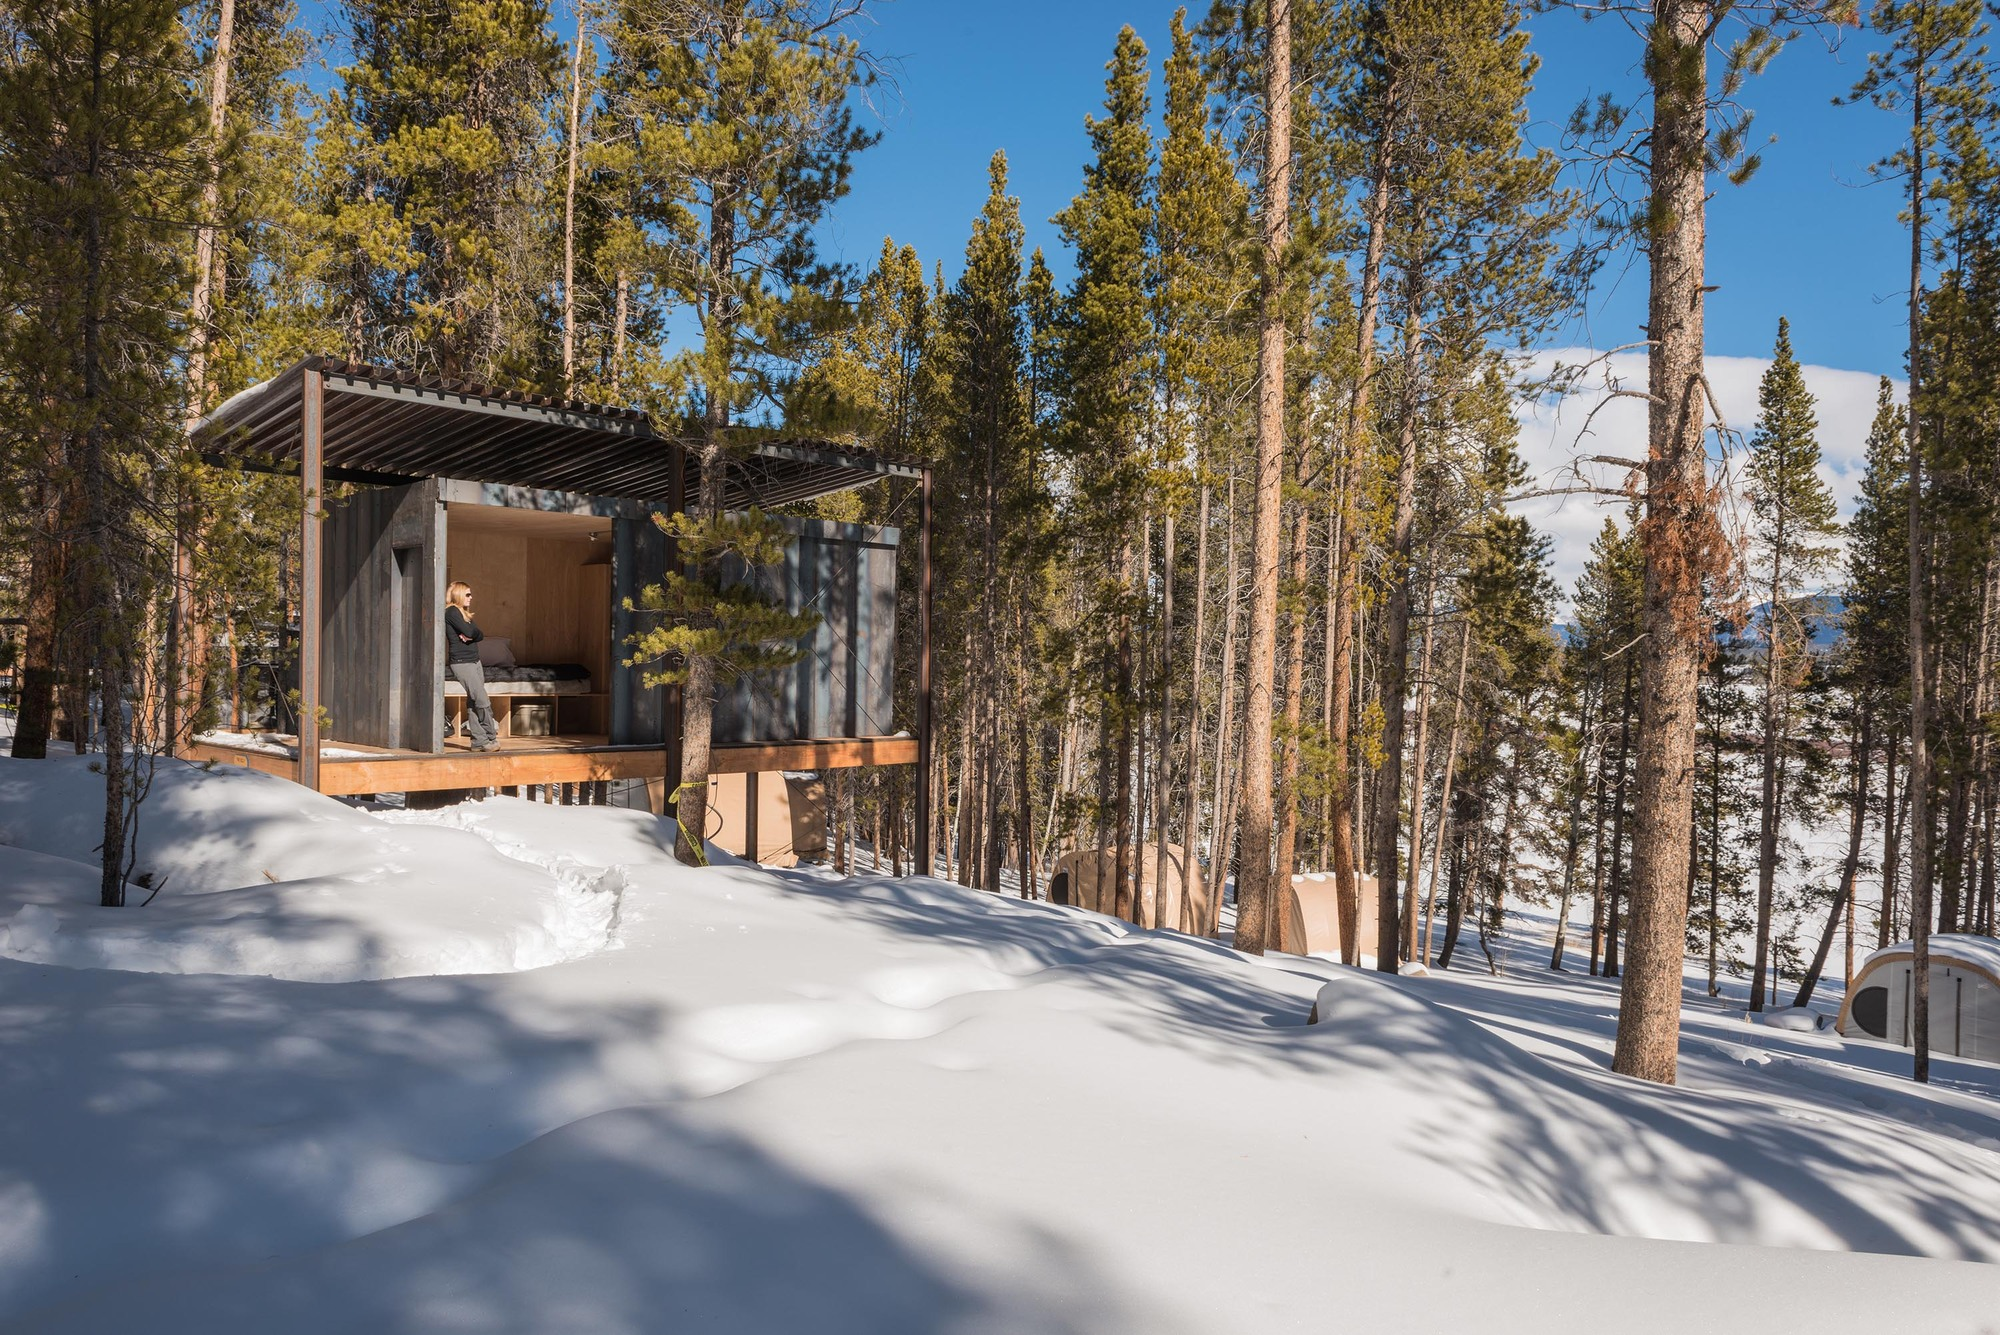 us denver glamping spring collections in hub colorado near cabins